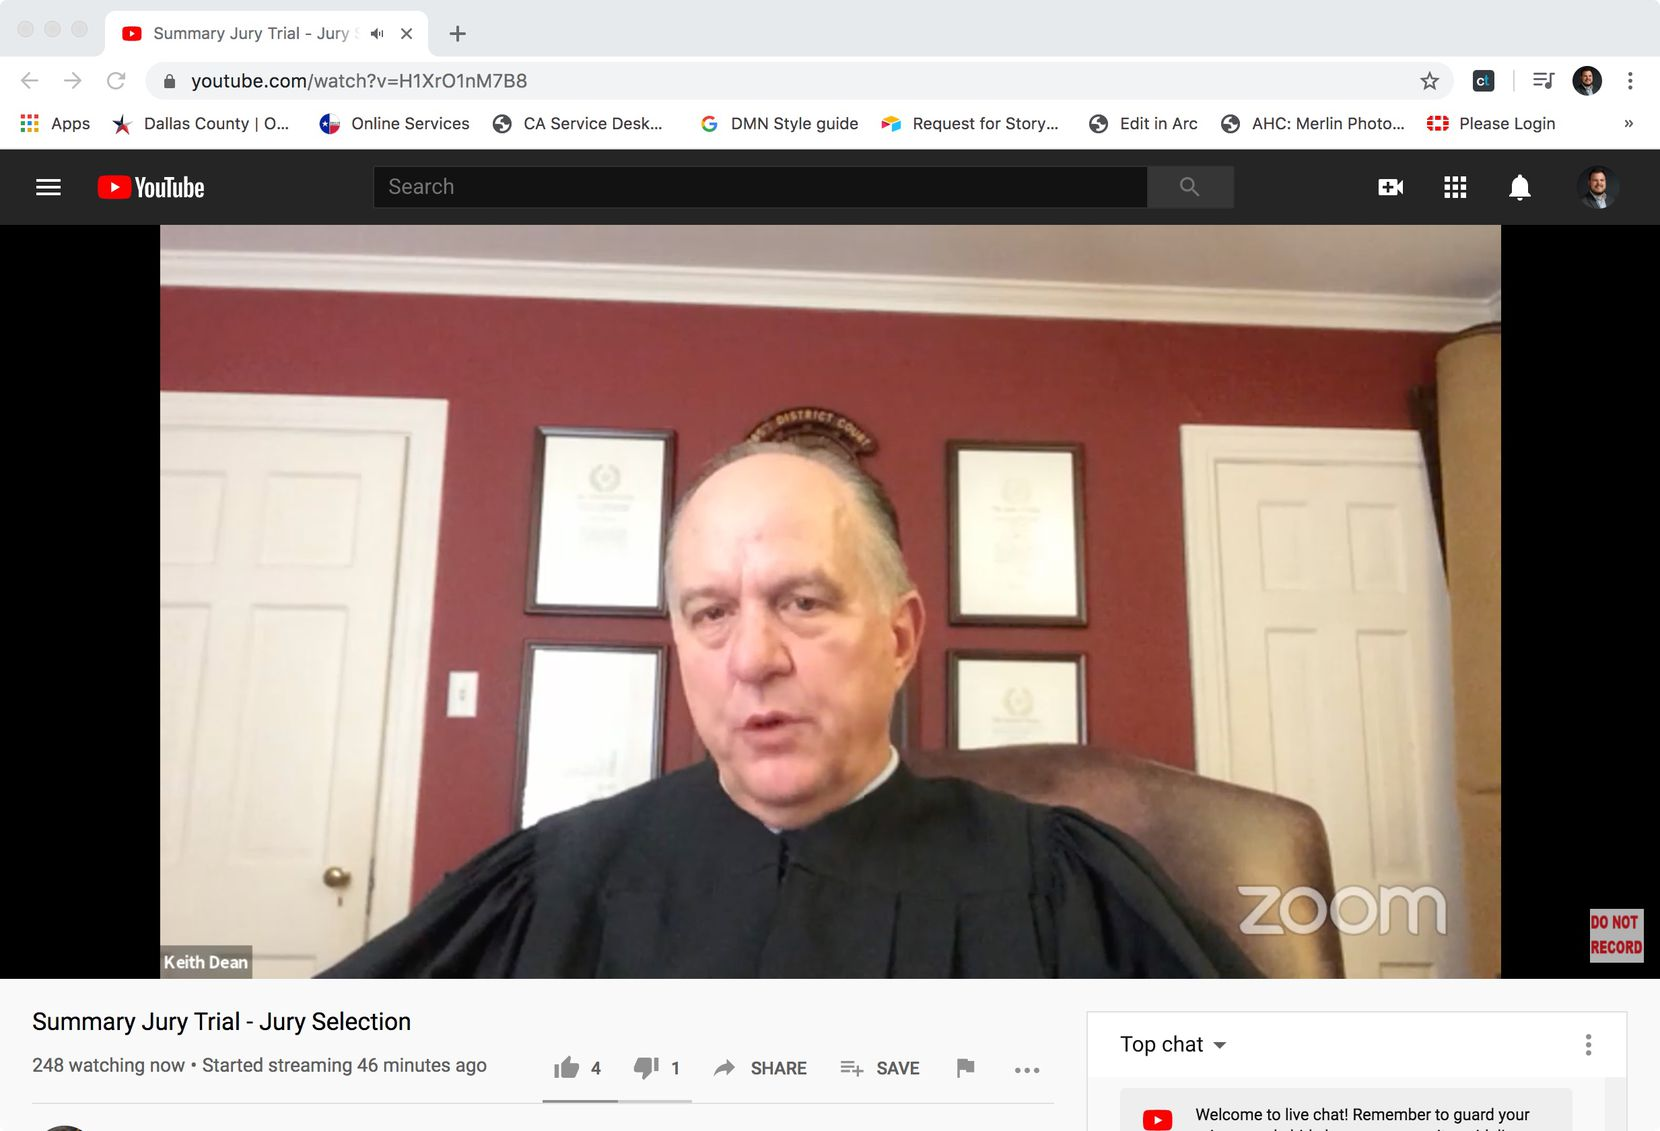 Retired judge Keith Dean speaks to potential jurors on a Zoom call for a summary jury trial in Collin County on May 18, 2020. It was the first time in Texas that a jury trial has taken place virtually, and potentially the first time in the nation, said Collin County Judge Emily Miskel.